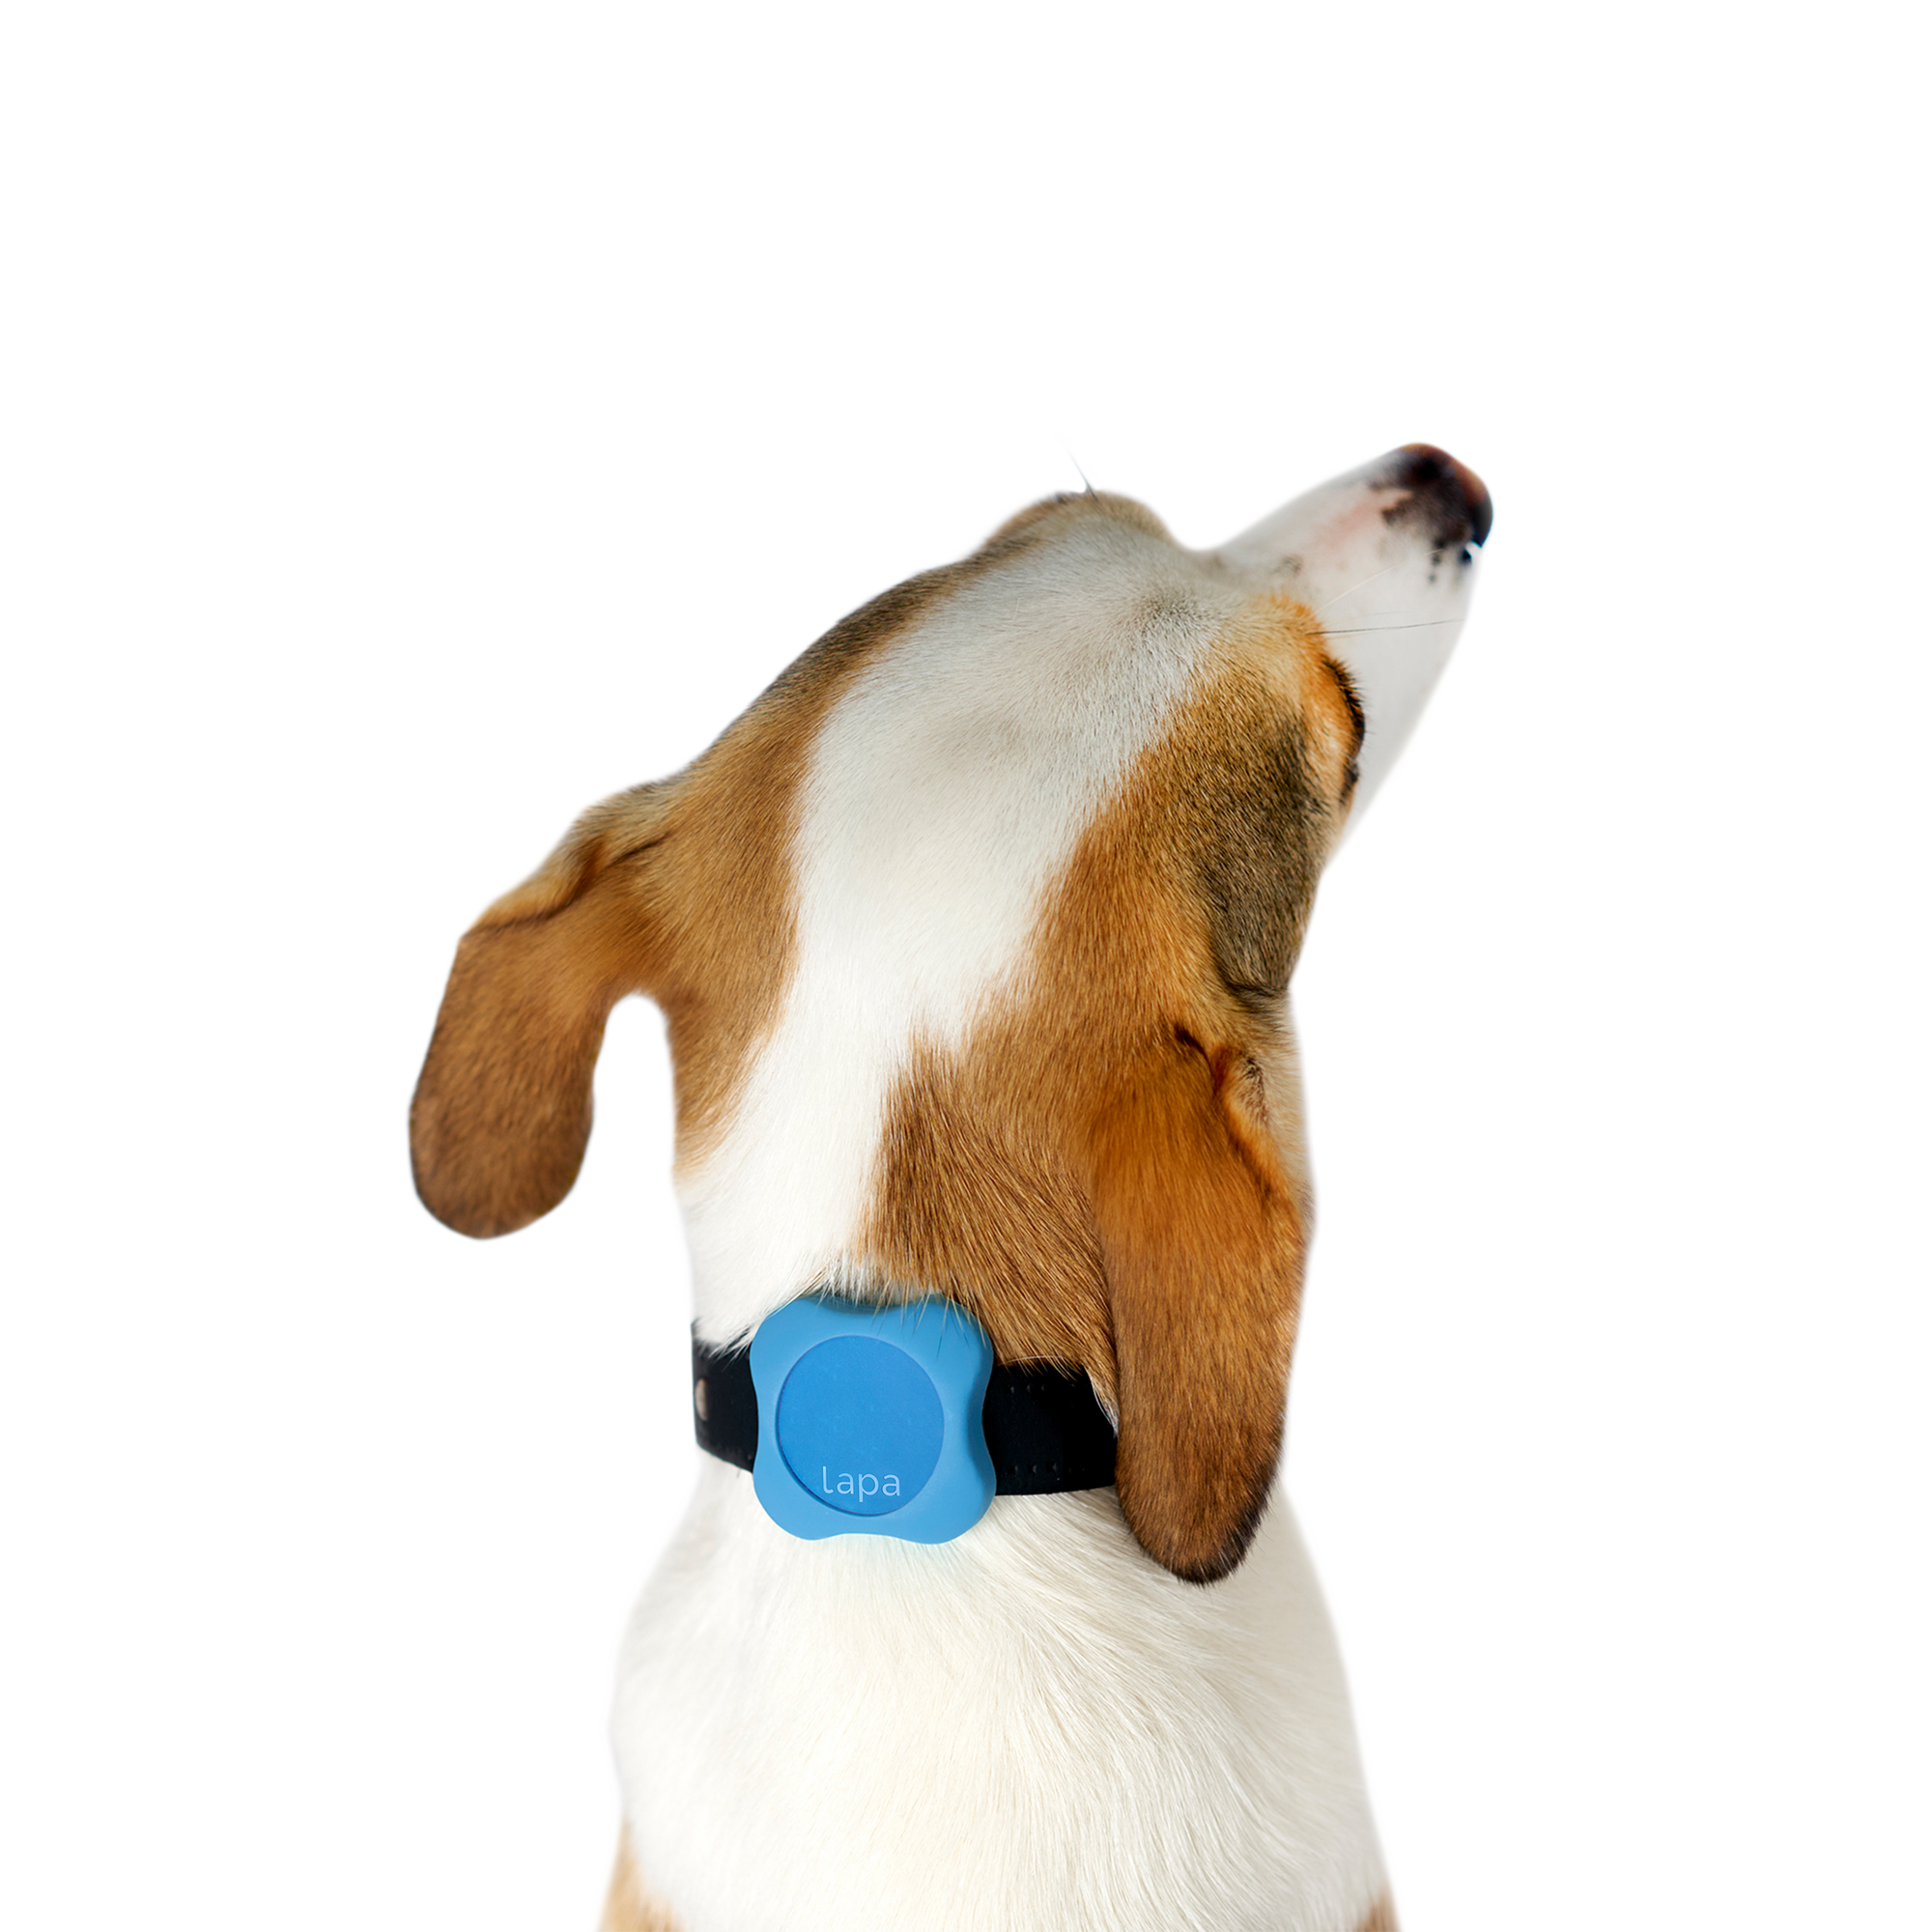 Lapa Bluetooth Tracker for Pets